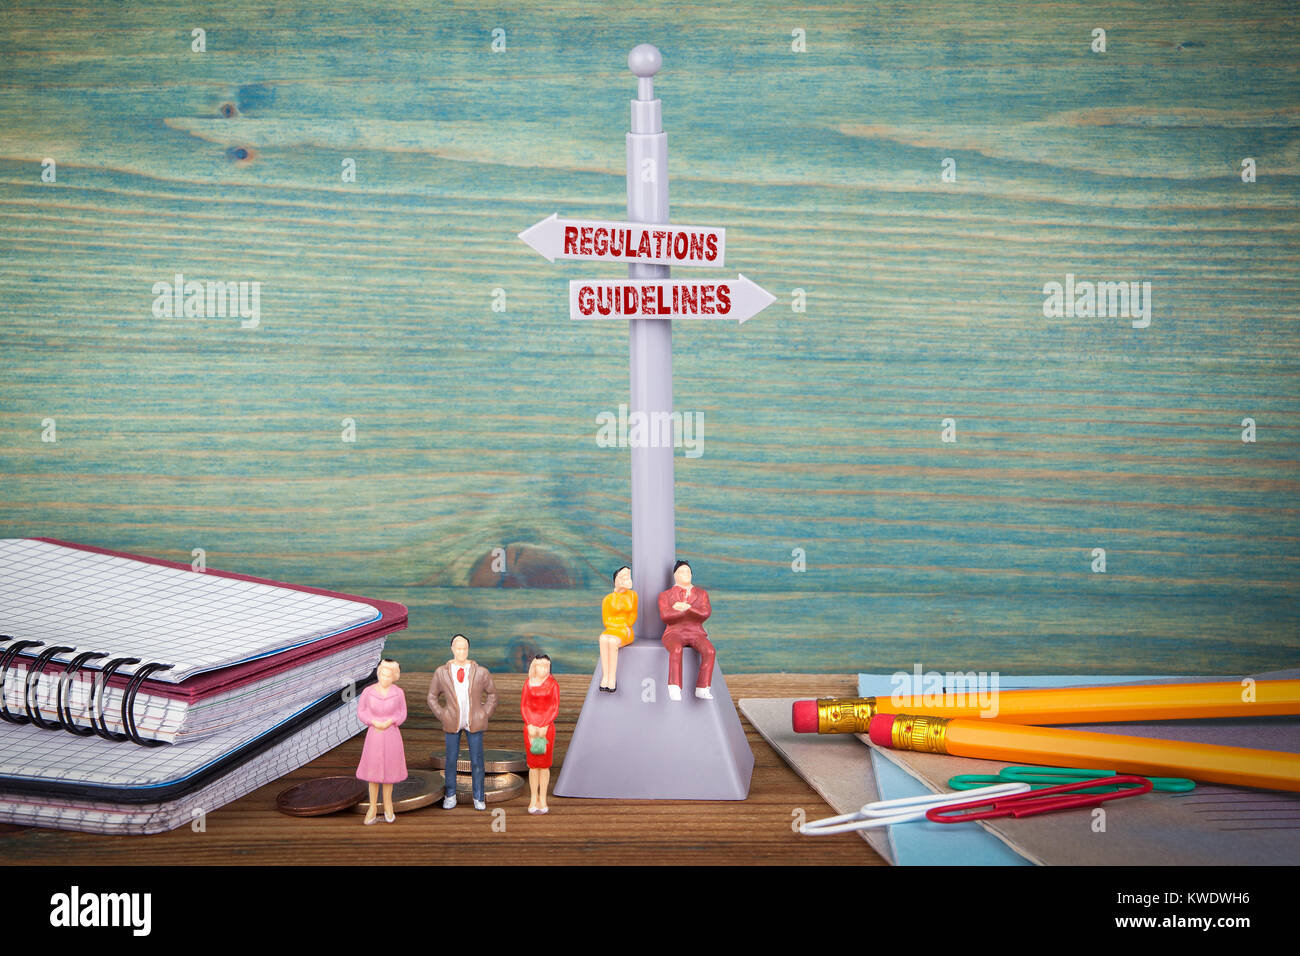 Regulations and Guidelines. Signpost on wooden table - Stock Image